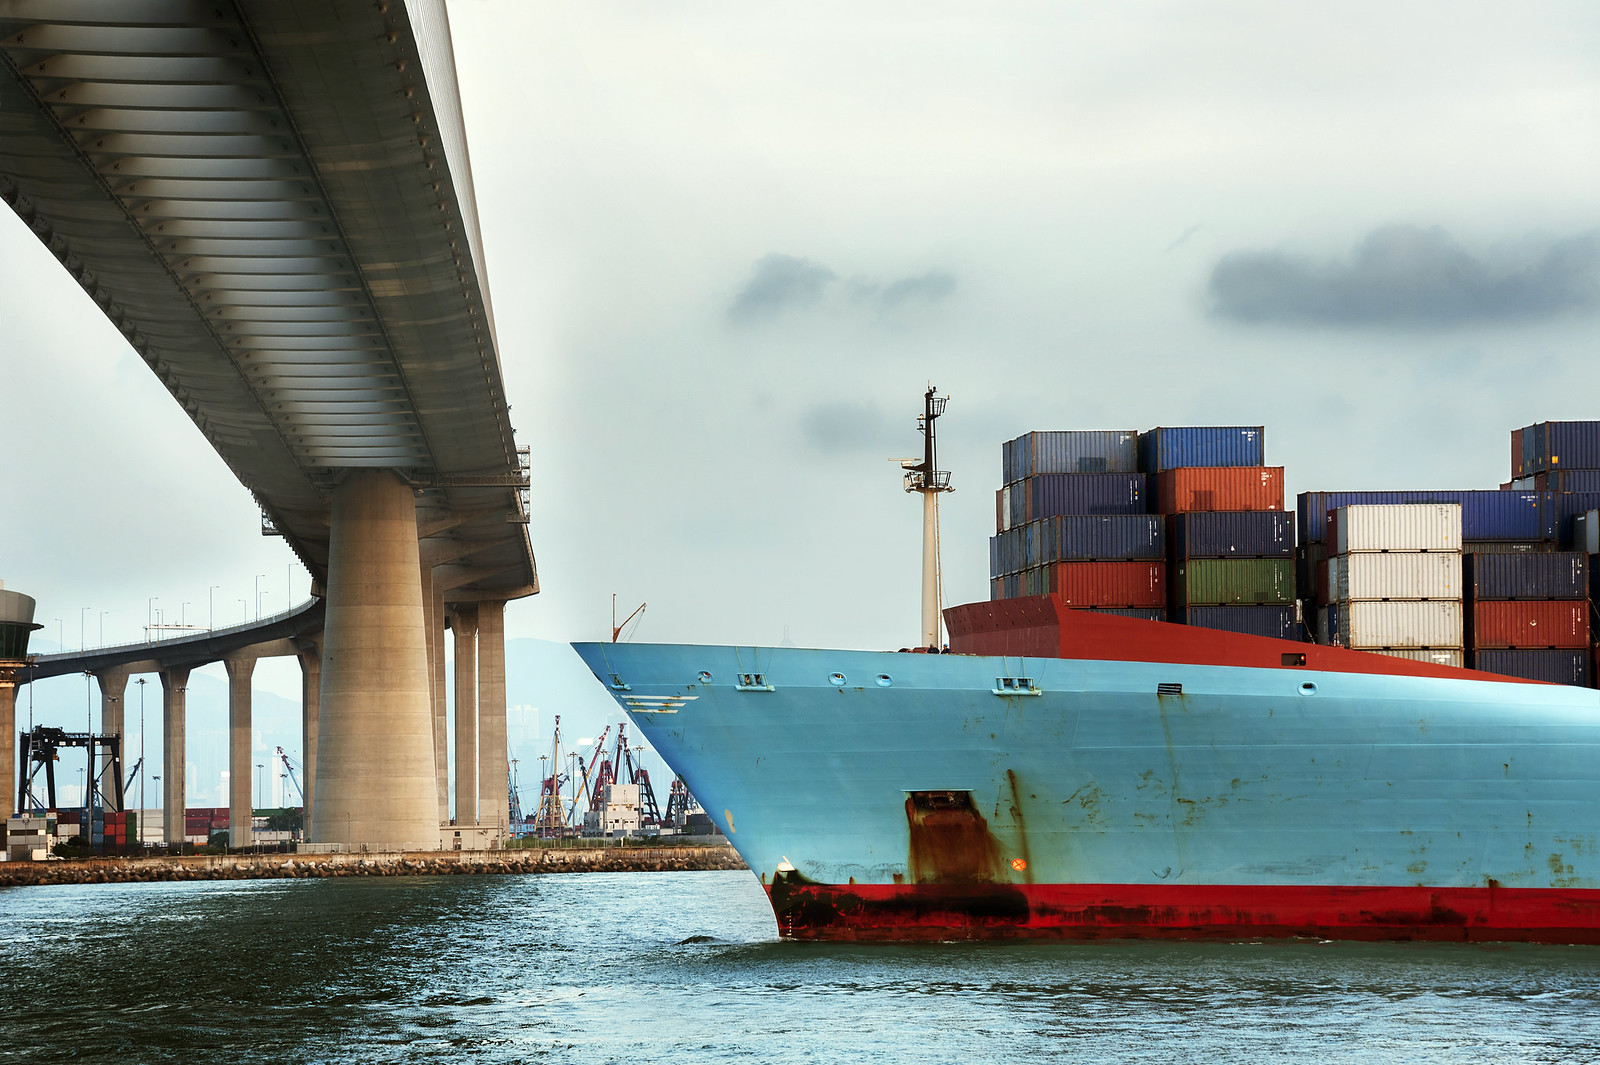 Shipping / containerskip Foto Thinkstock